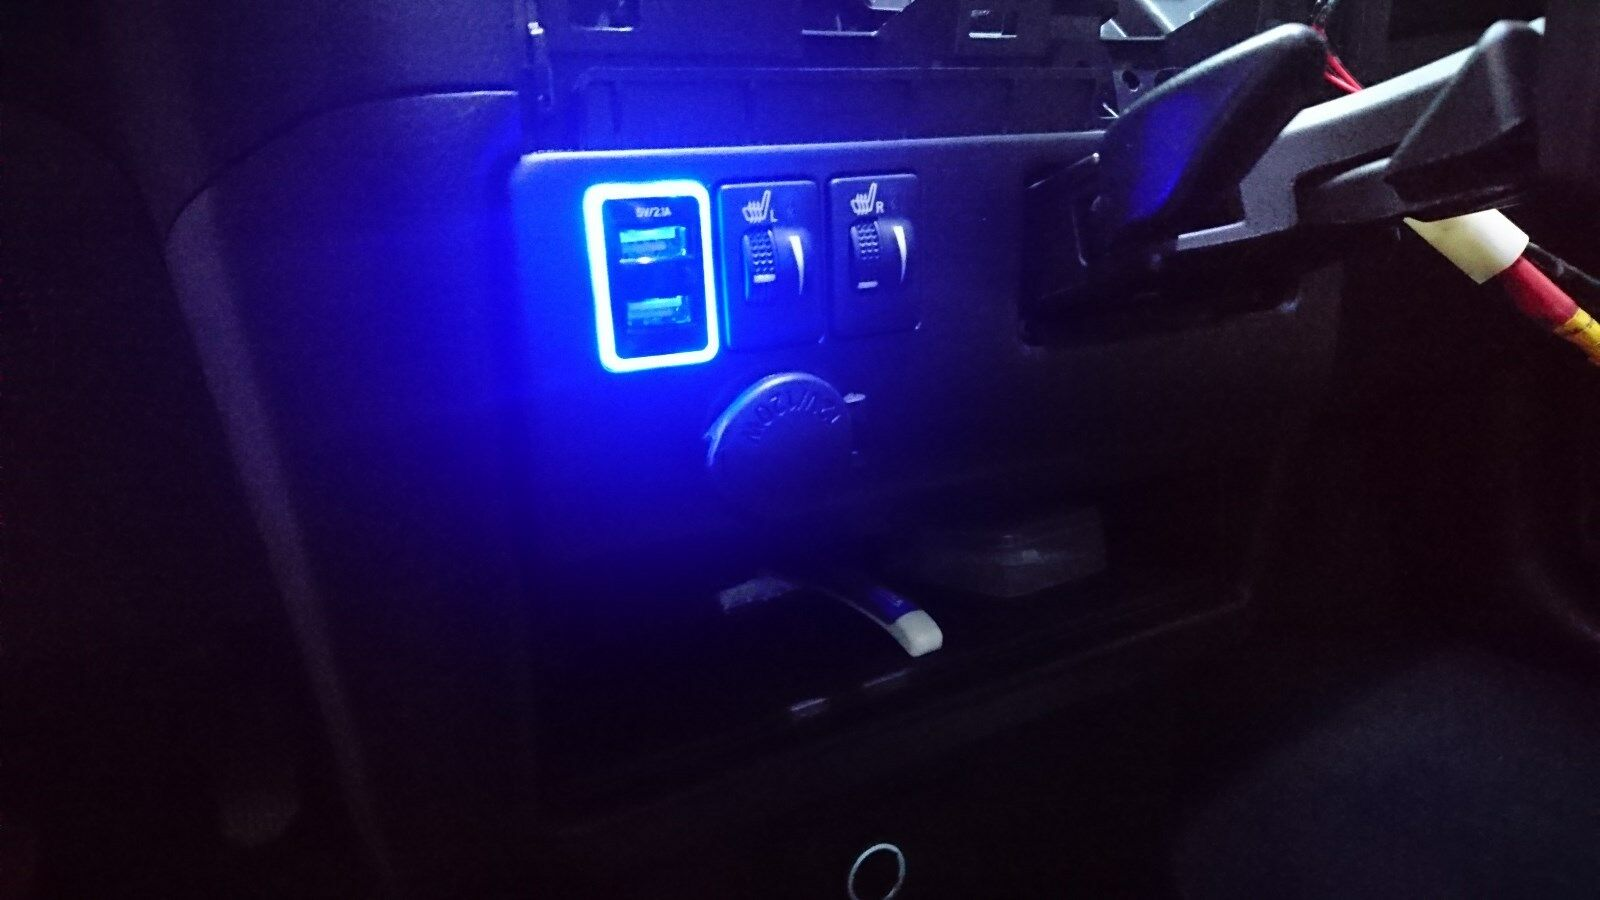 MIT TOYOTA C-HR 2017-2018 OEM LED Dual USB port 2.1A Adapter power phone charger